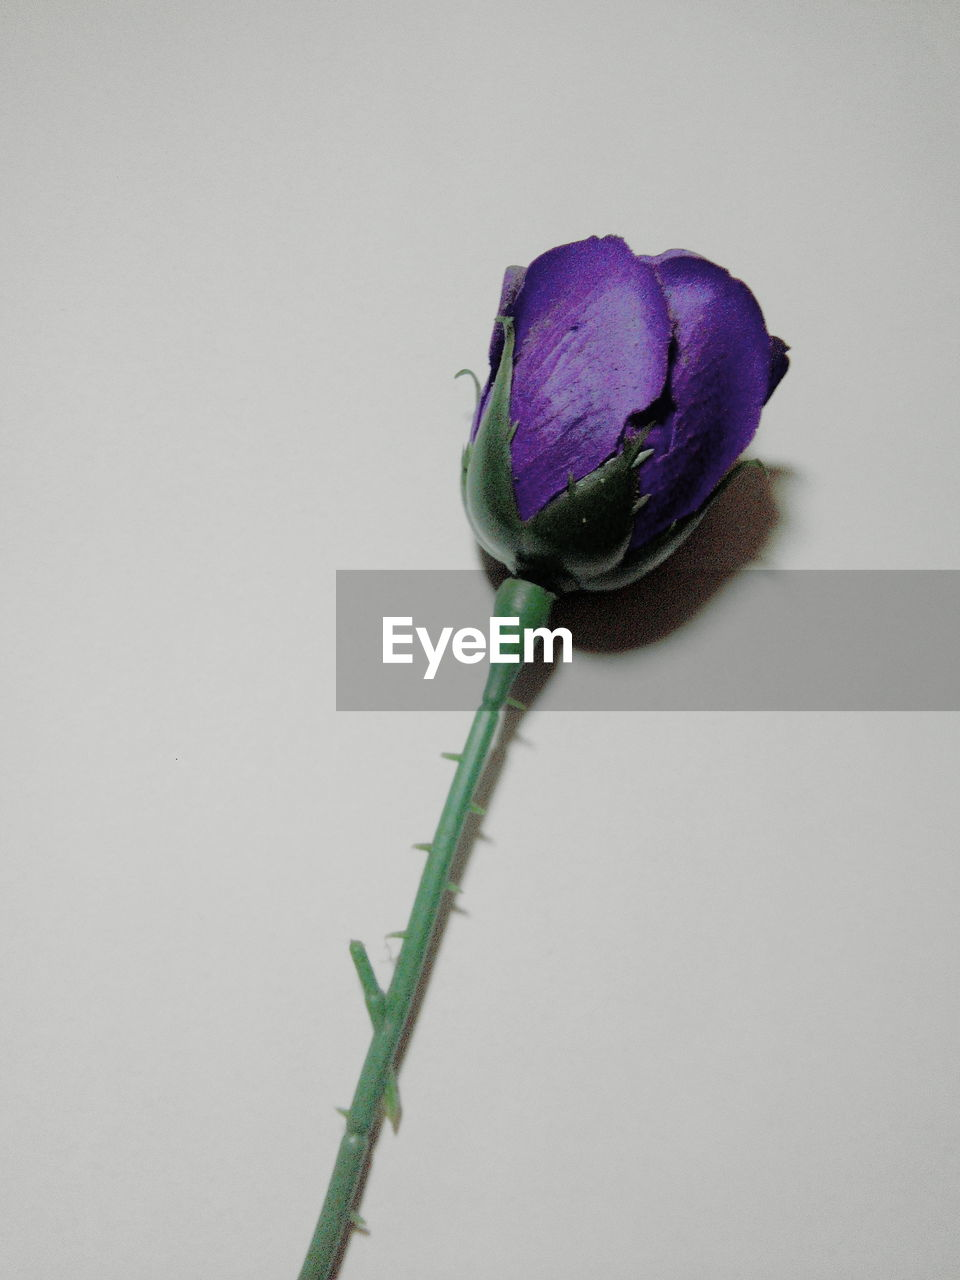 flower, studio shot, white background, freshness, copy space, purple, fragility, nature, petal, no people, close-up, plant, flower head, beauty in nature, day